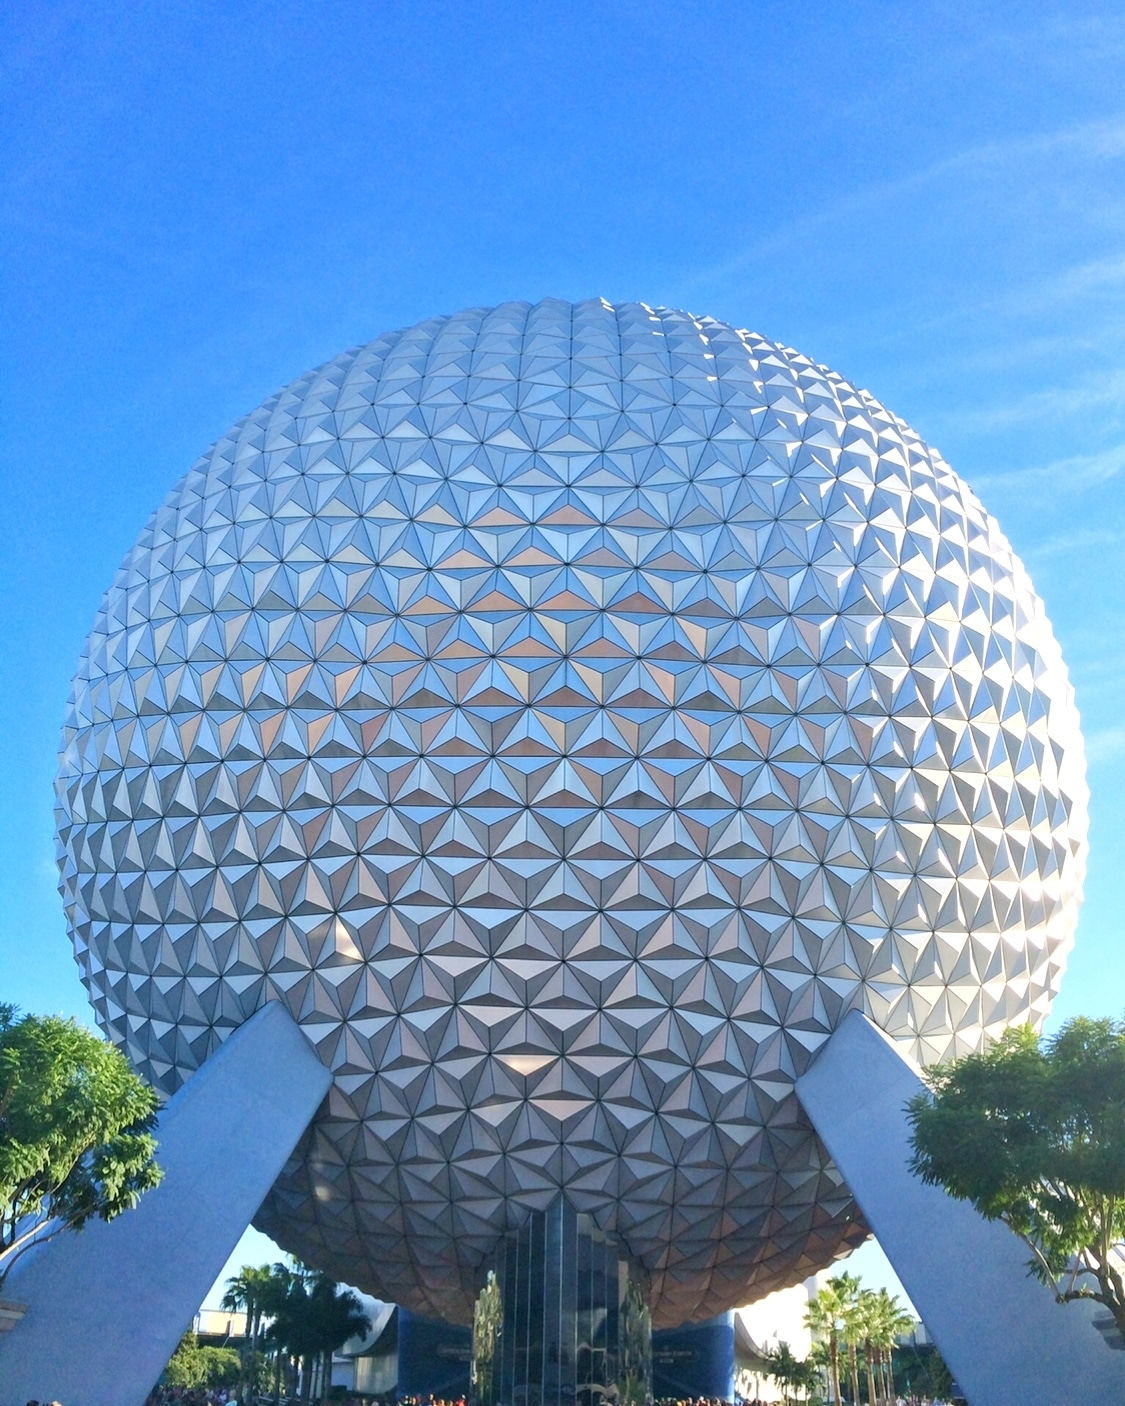 Spaceship Earth in Epcot at Walt Disney World